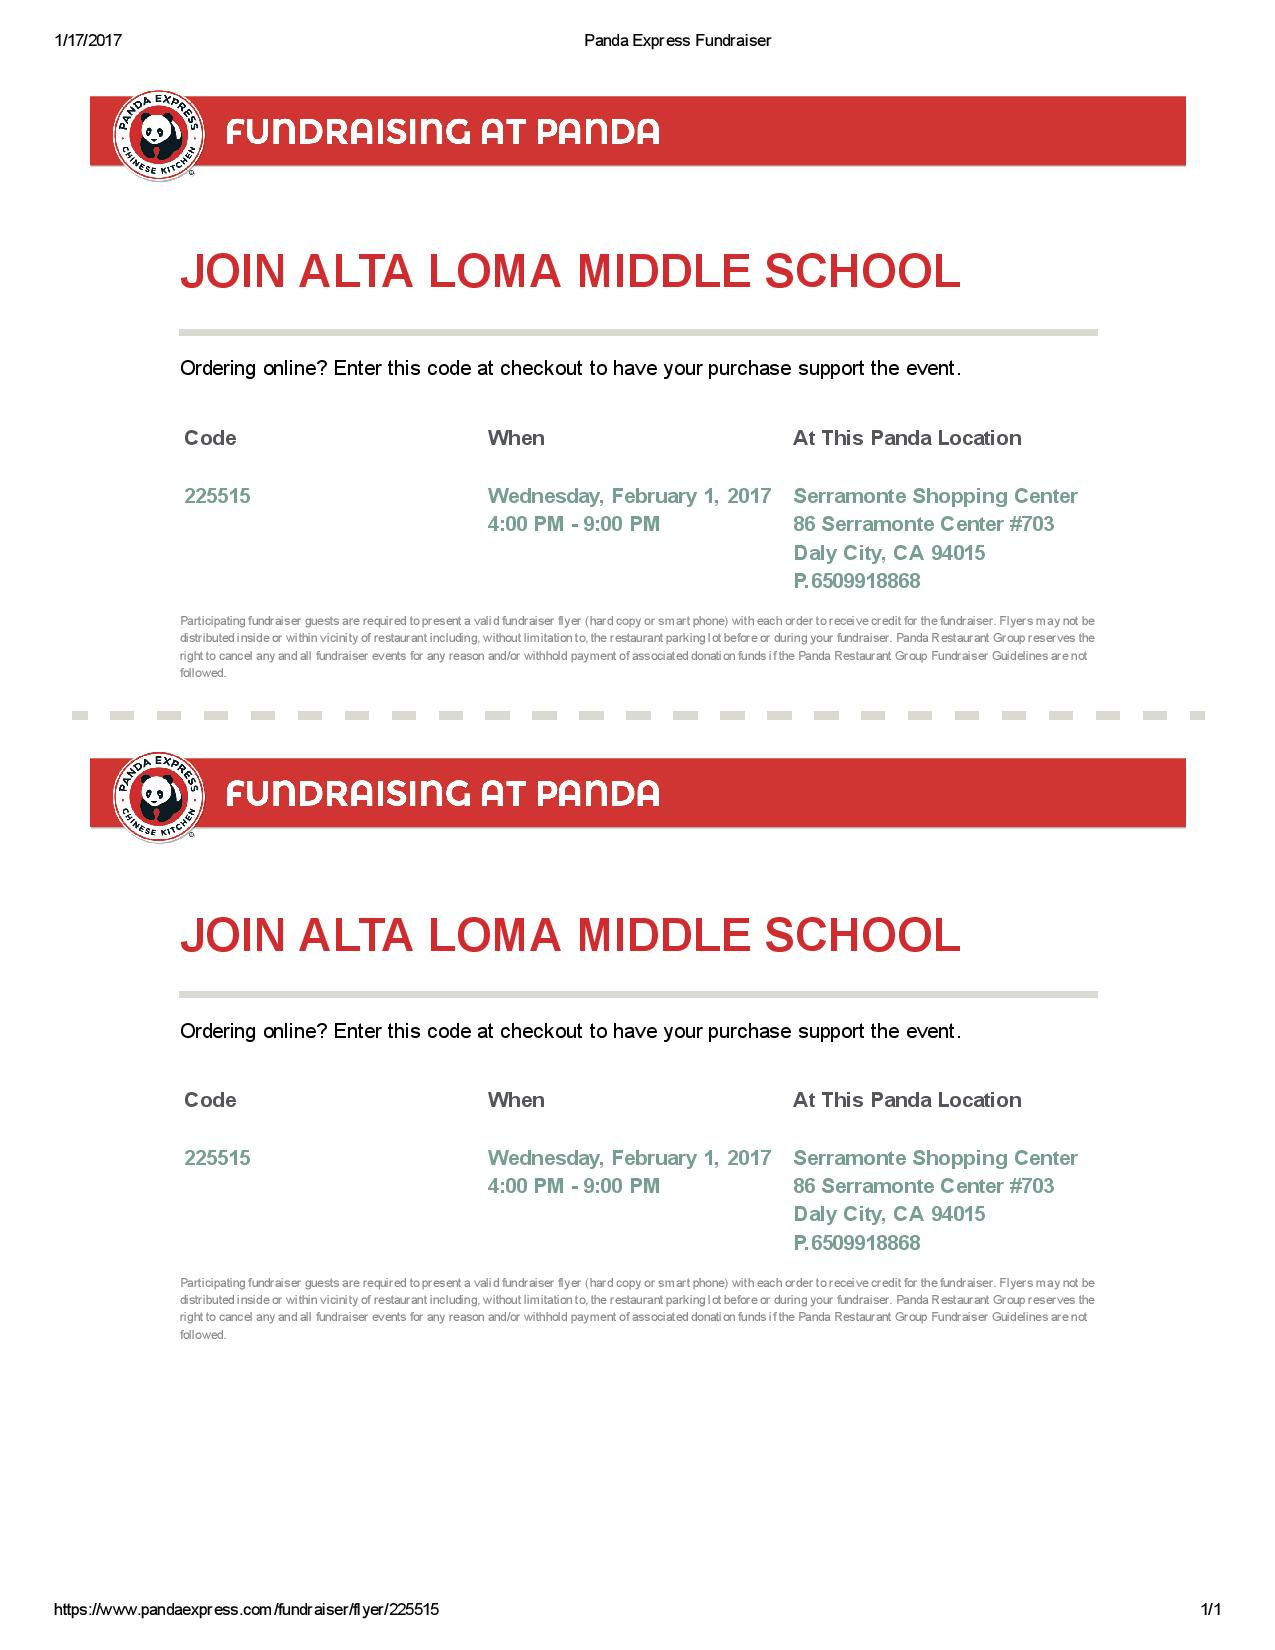 Alta Loma Middle School Hosts Fundraiser at Panda Express February 1st